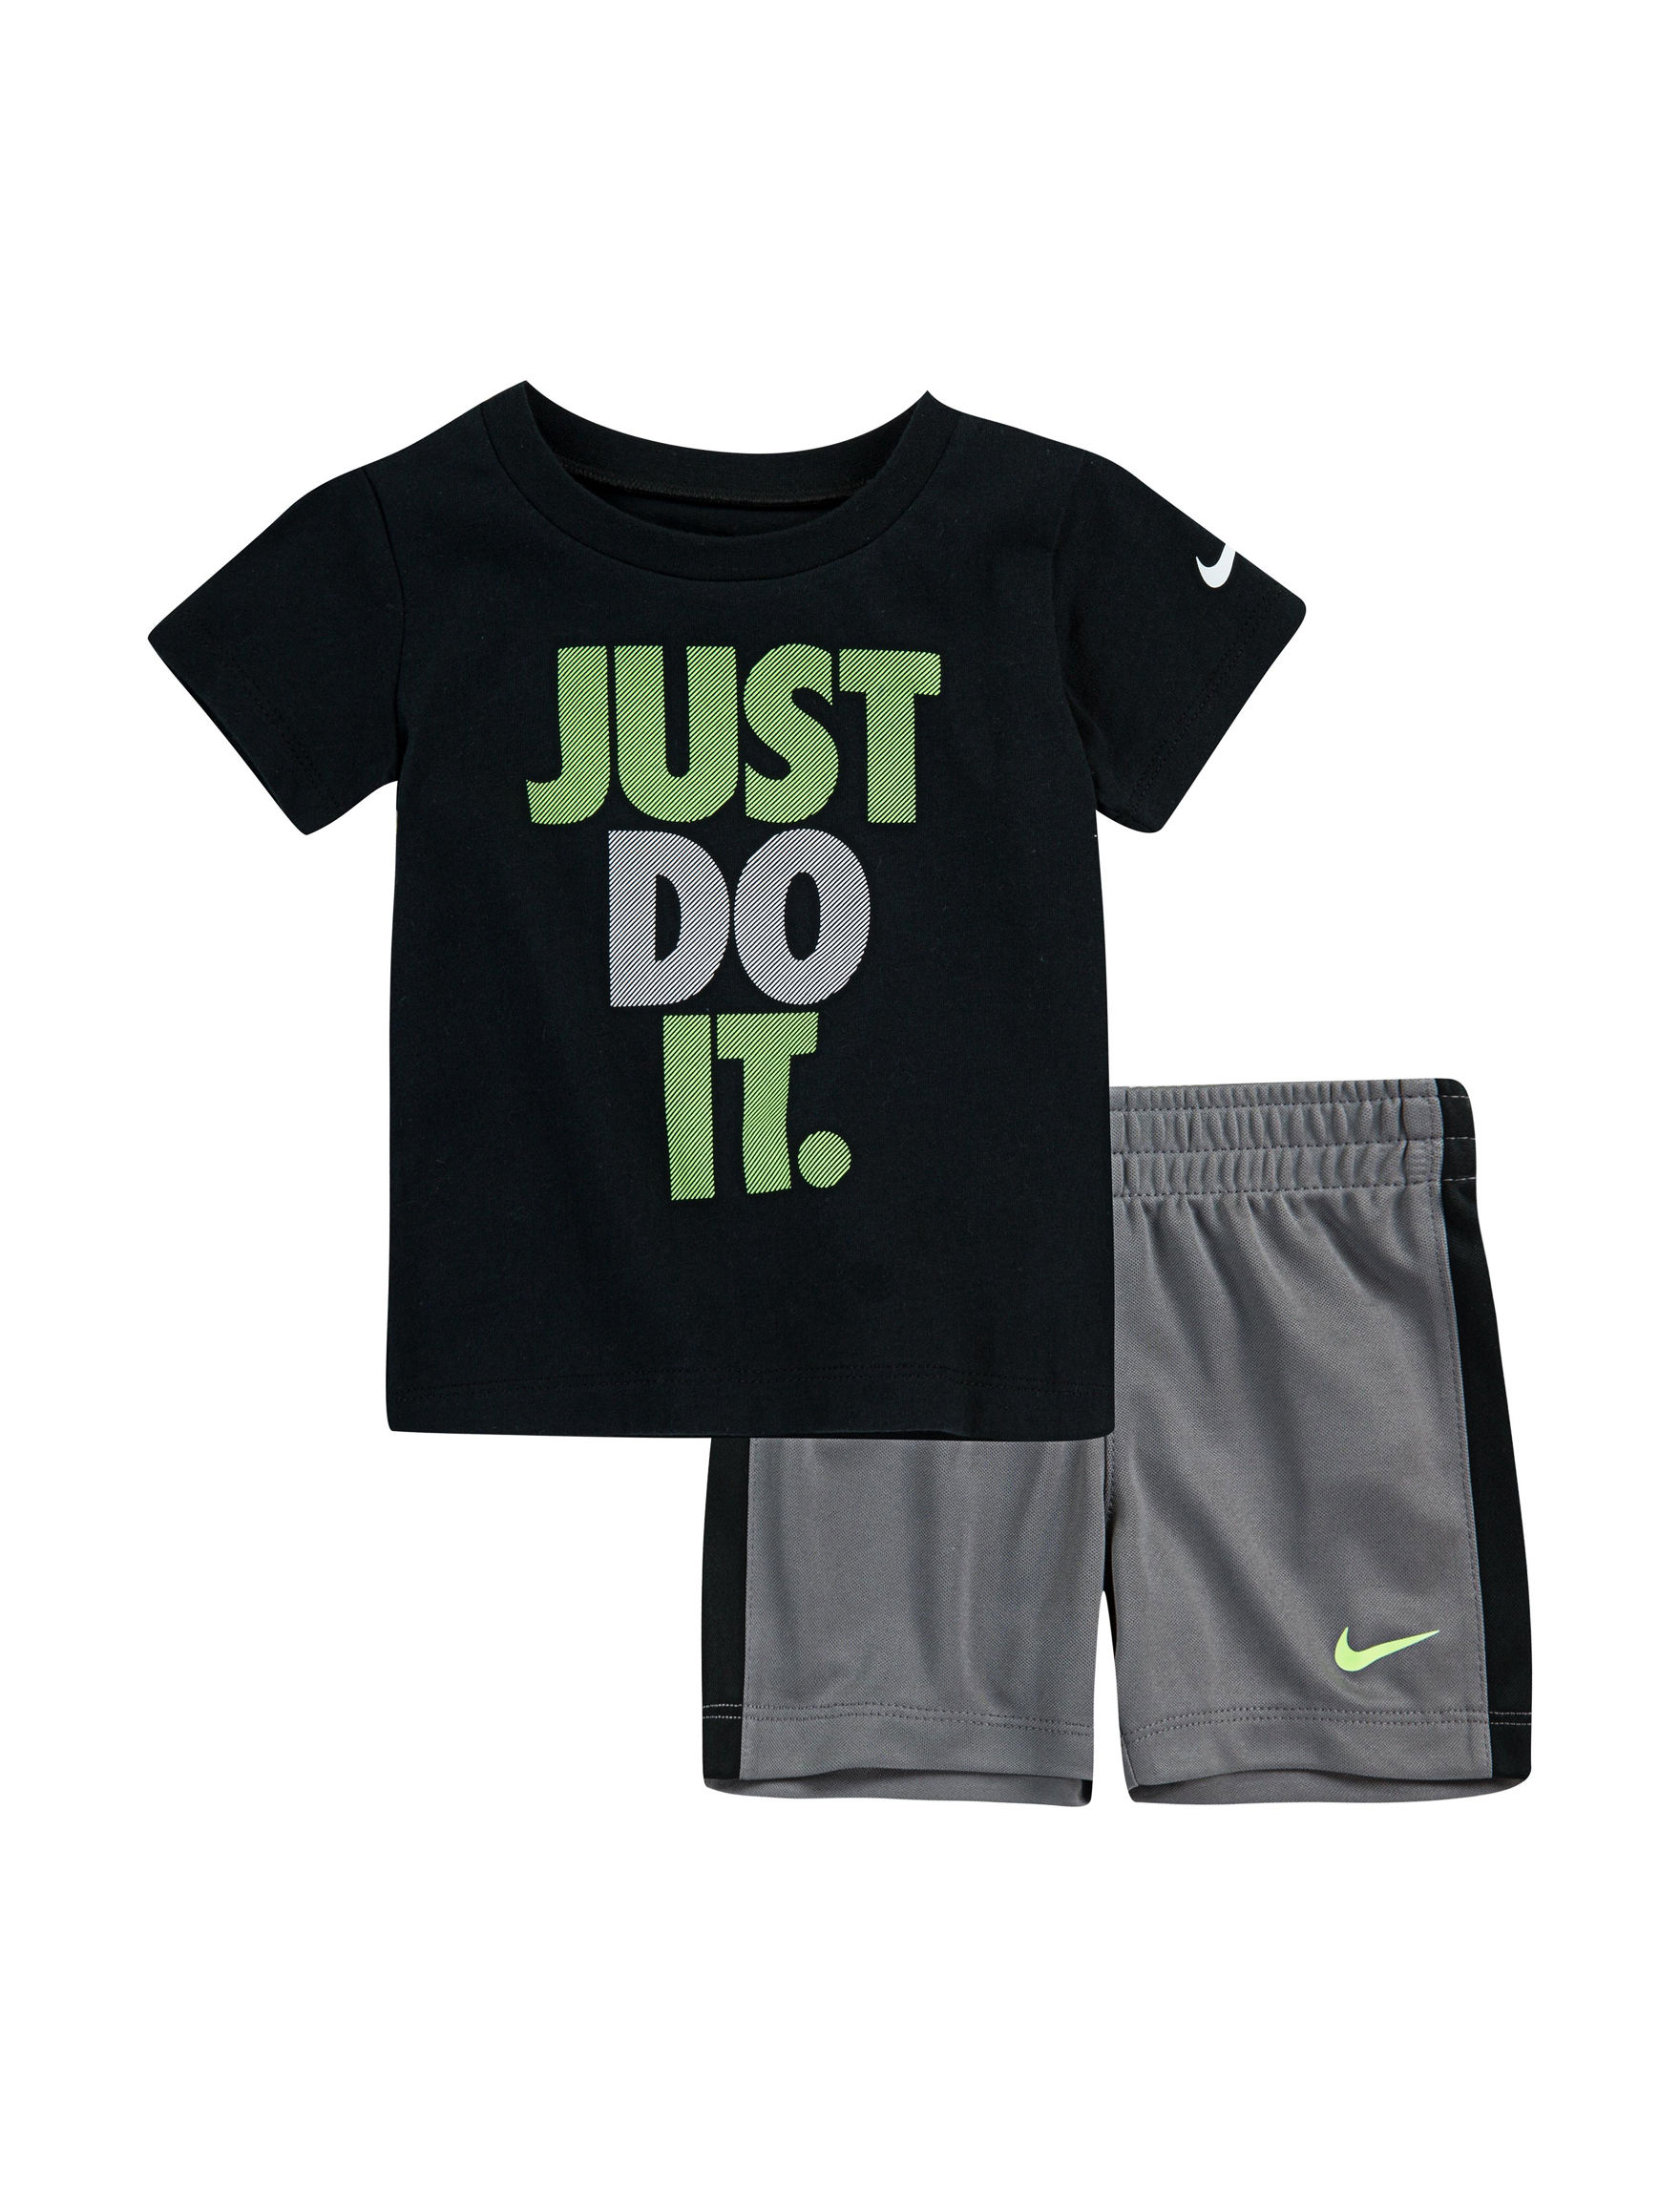 Nike Black / Grey / Green